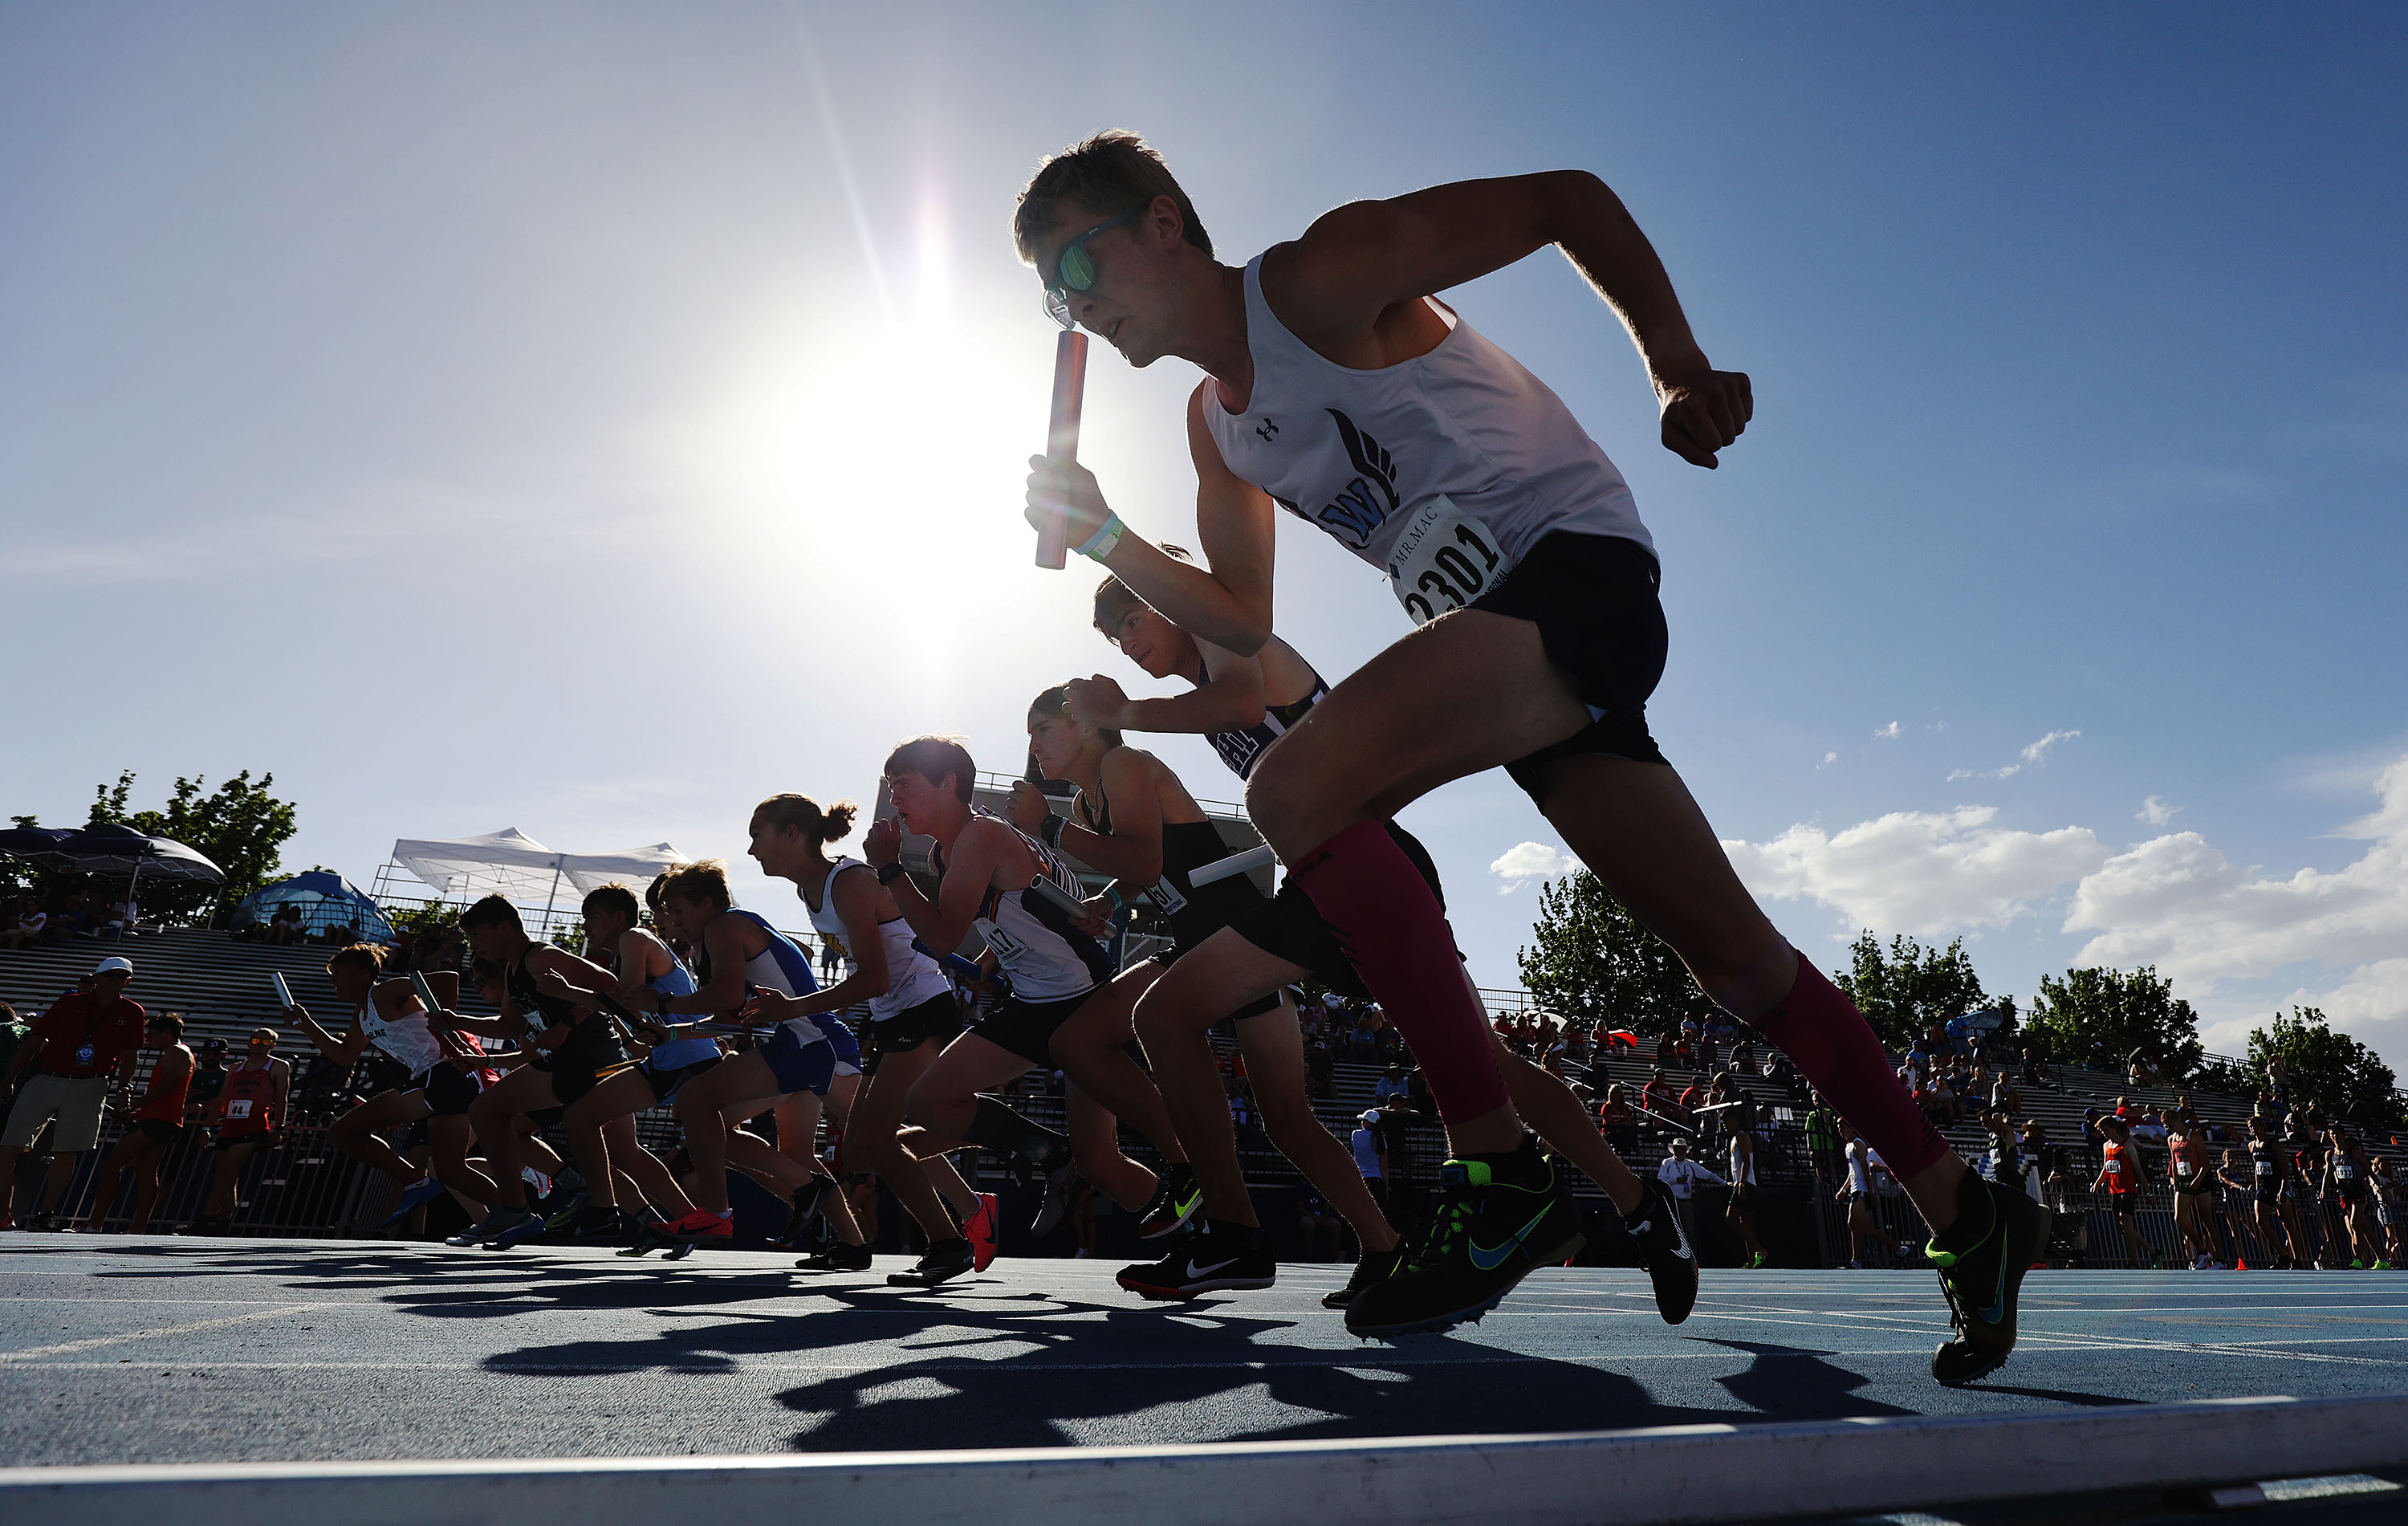 Runners compete during the BYU Invitational in Provo on Friday, May 7, 2021.